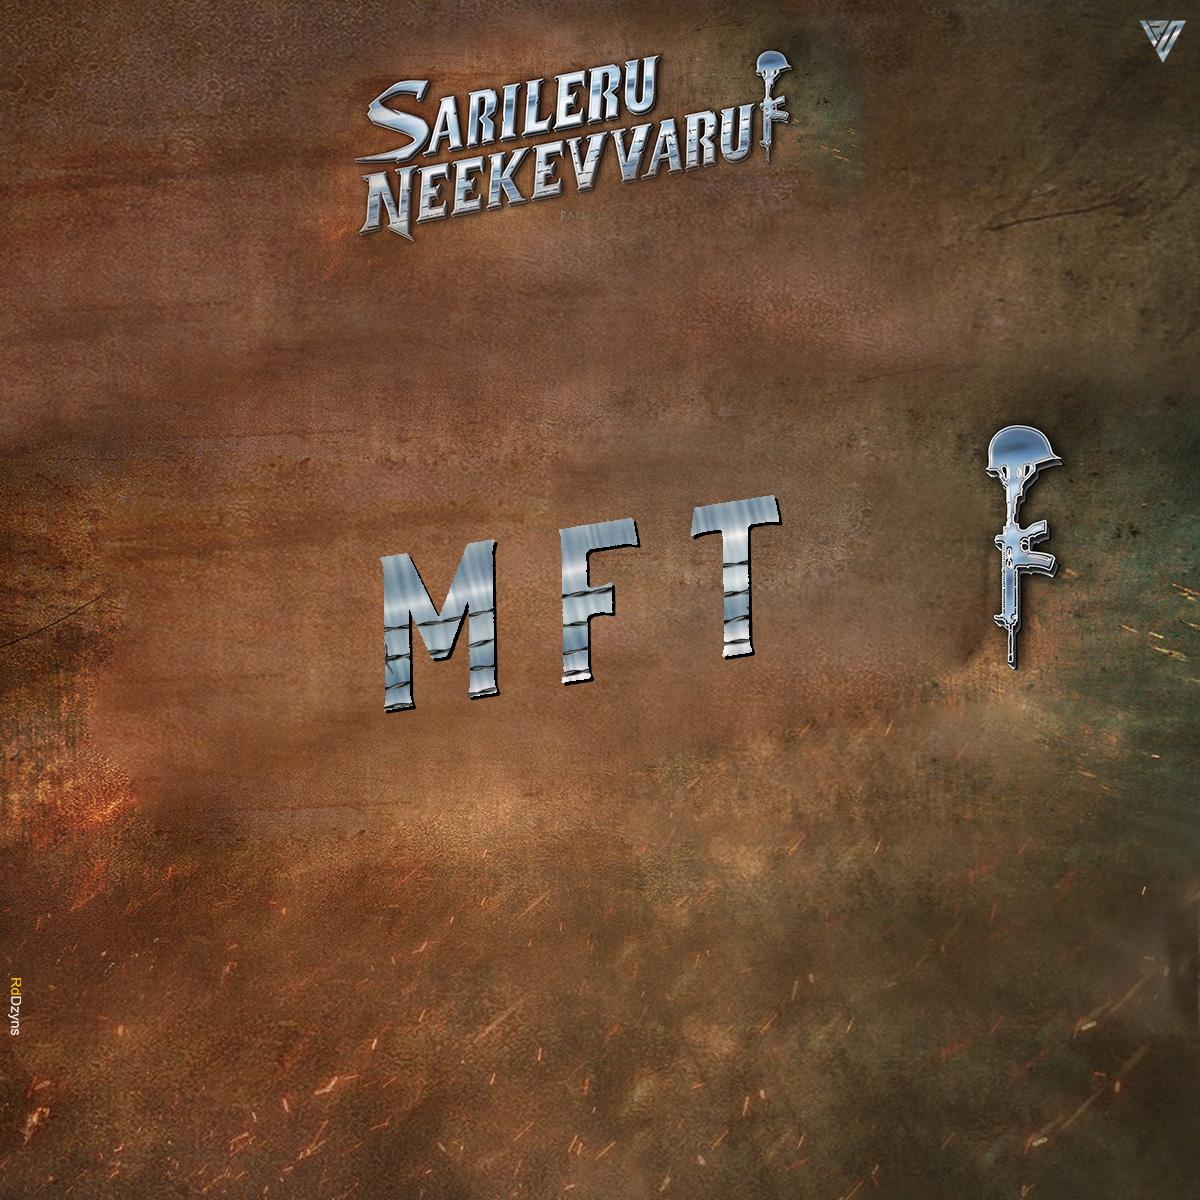 Here it is #SarileruNeekevvaru font generator 💥 http://apk rddzyns